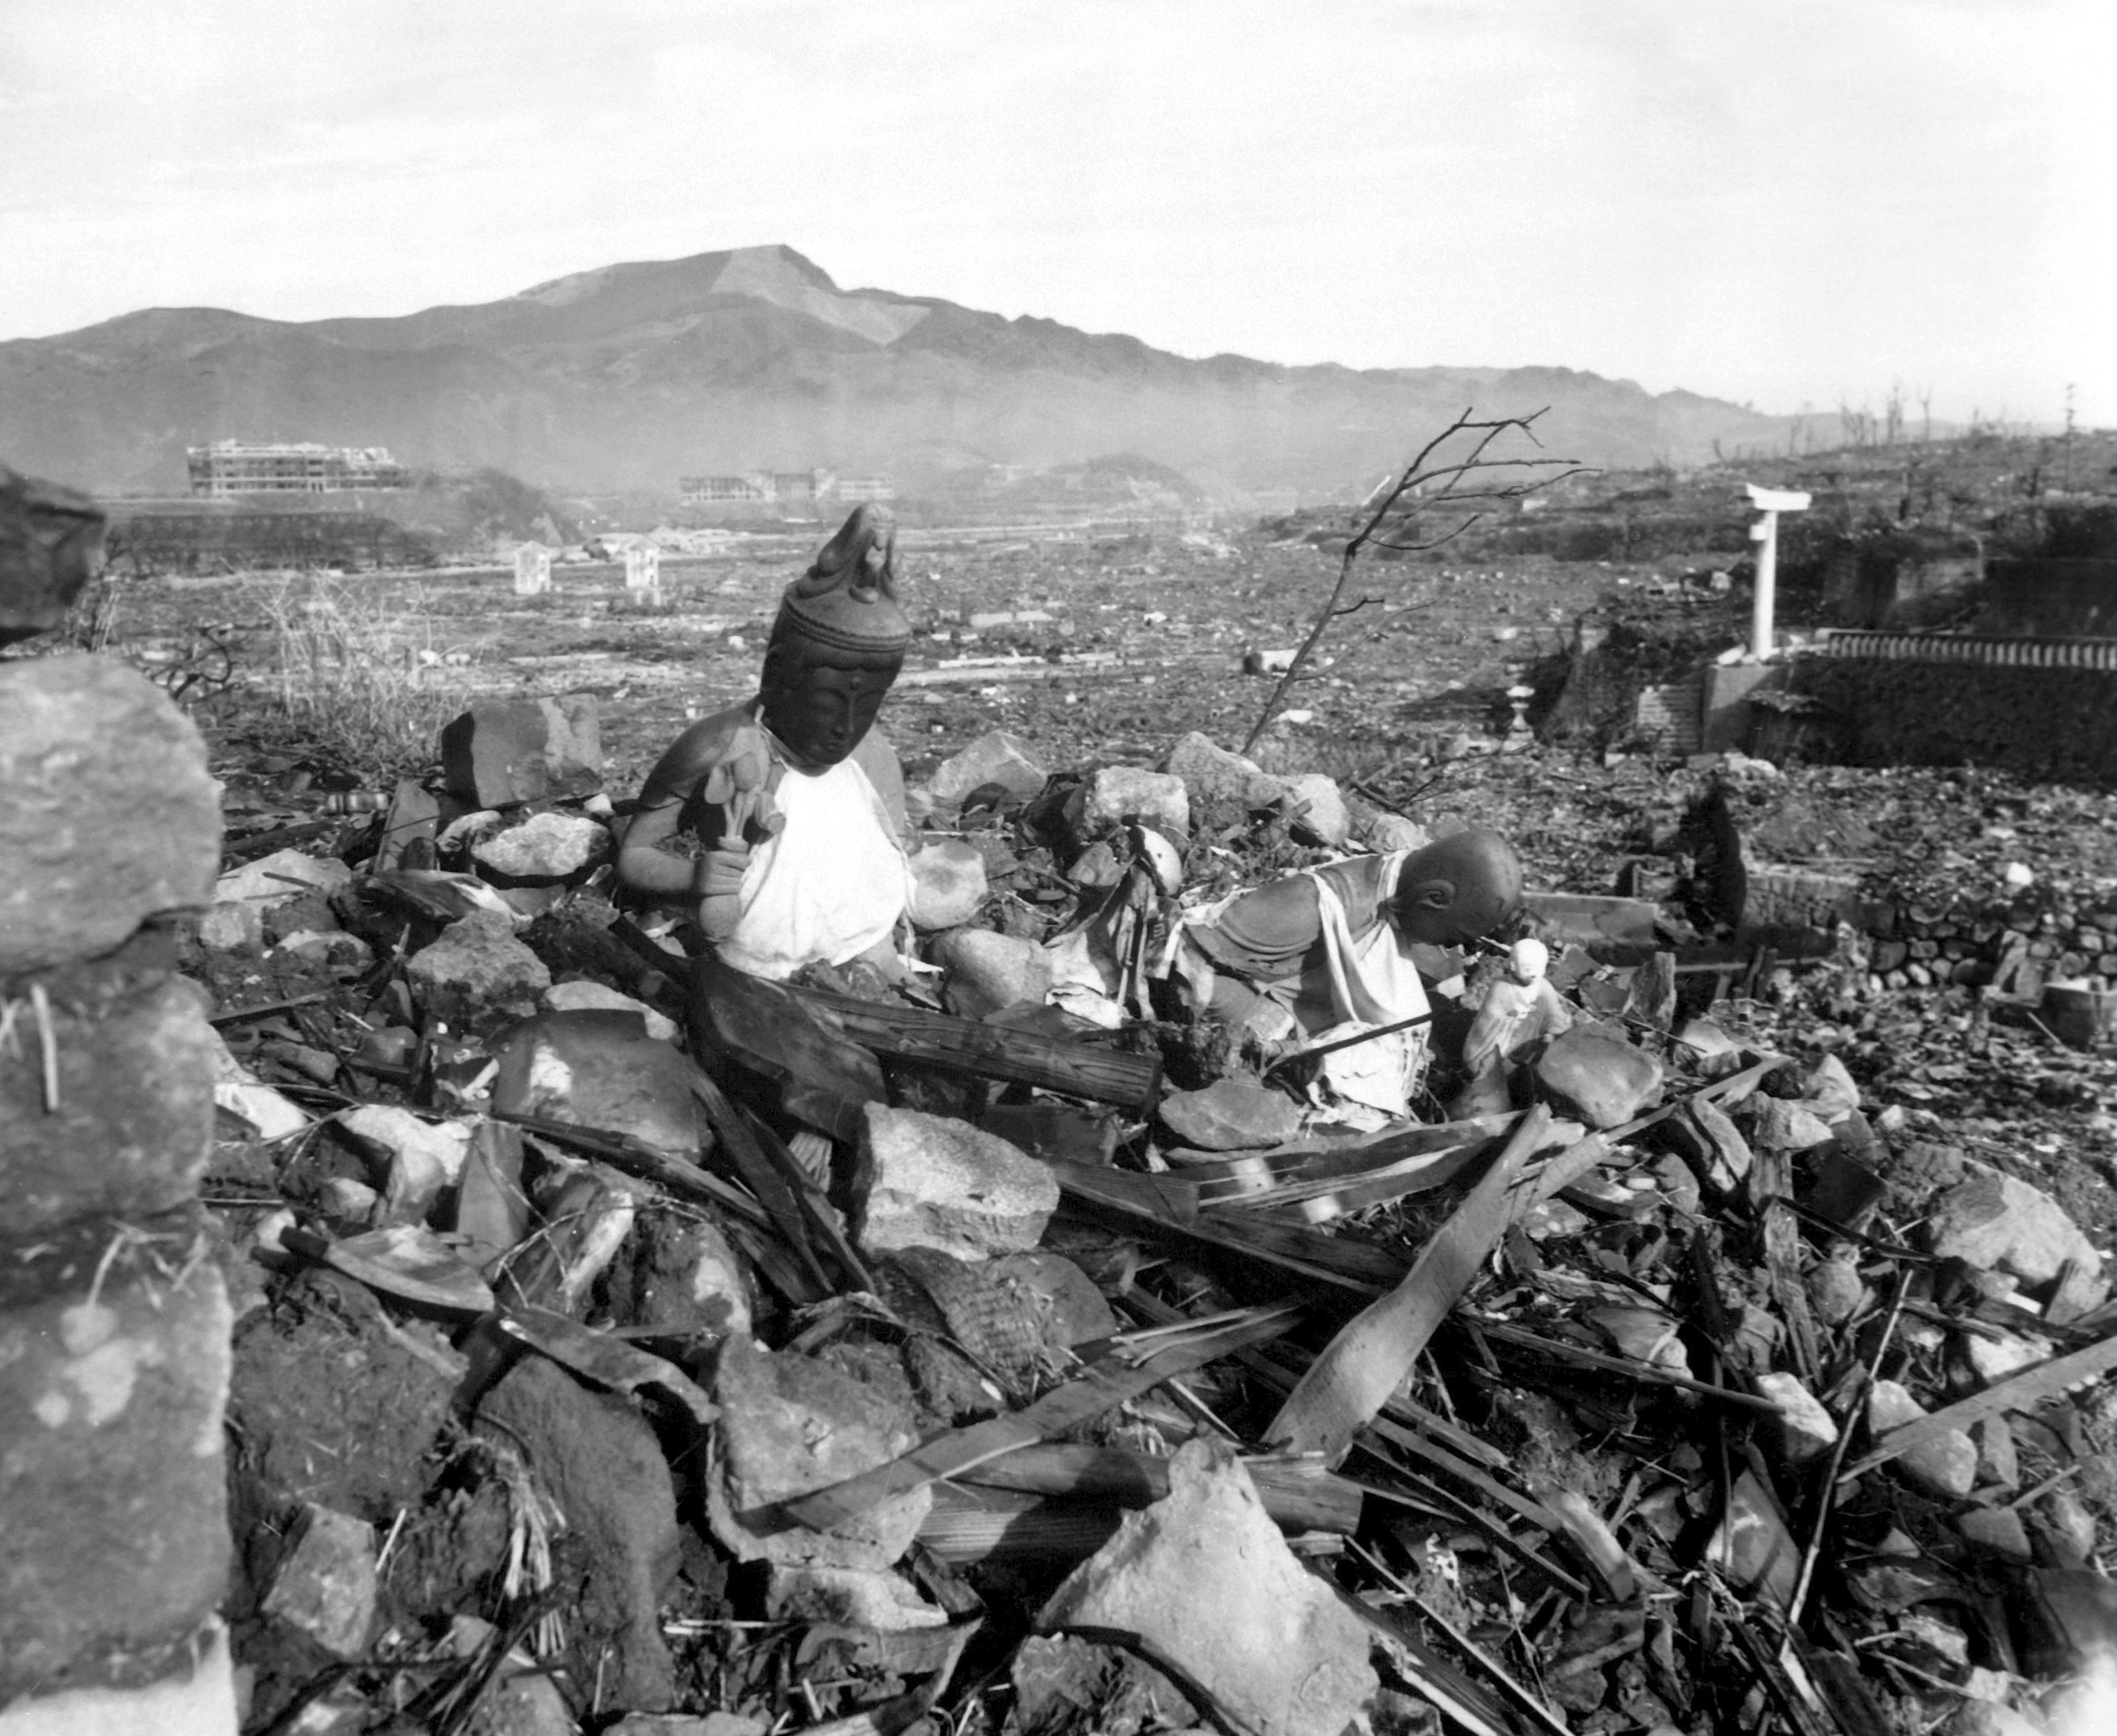 Did the bombing of Hiroshima and Nagasaki have a significant impact on American way of life?